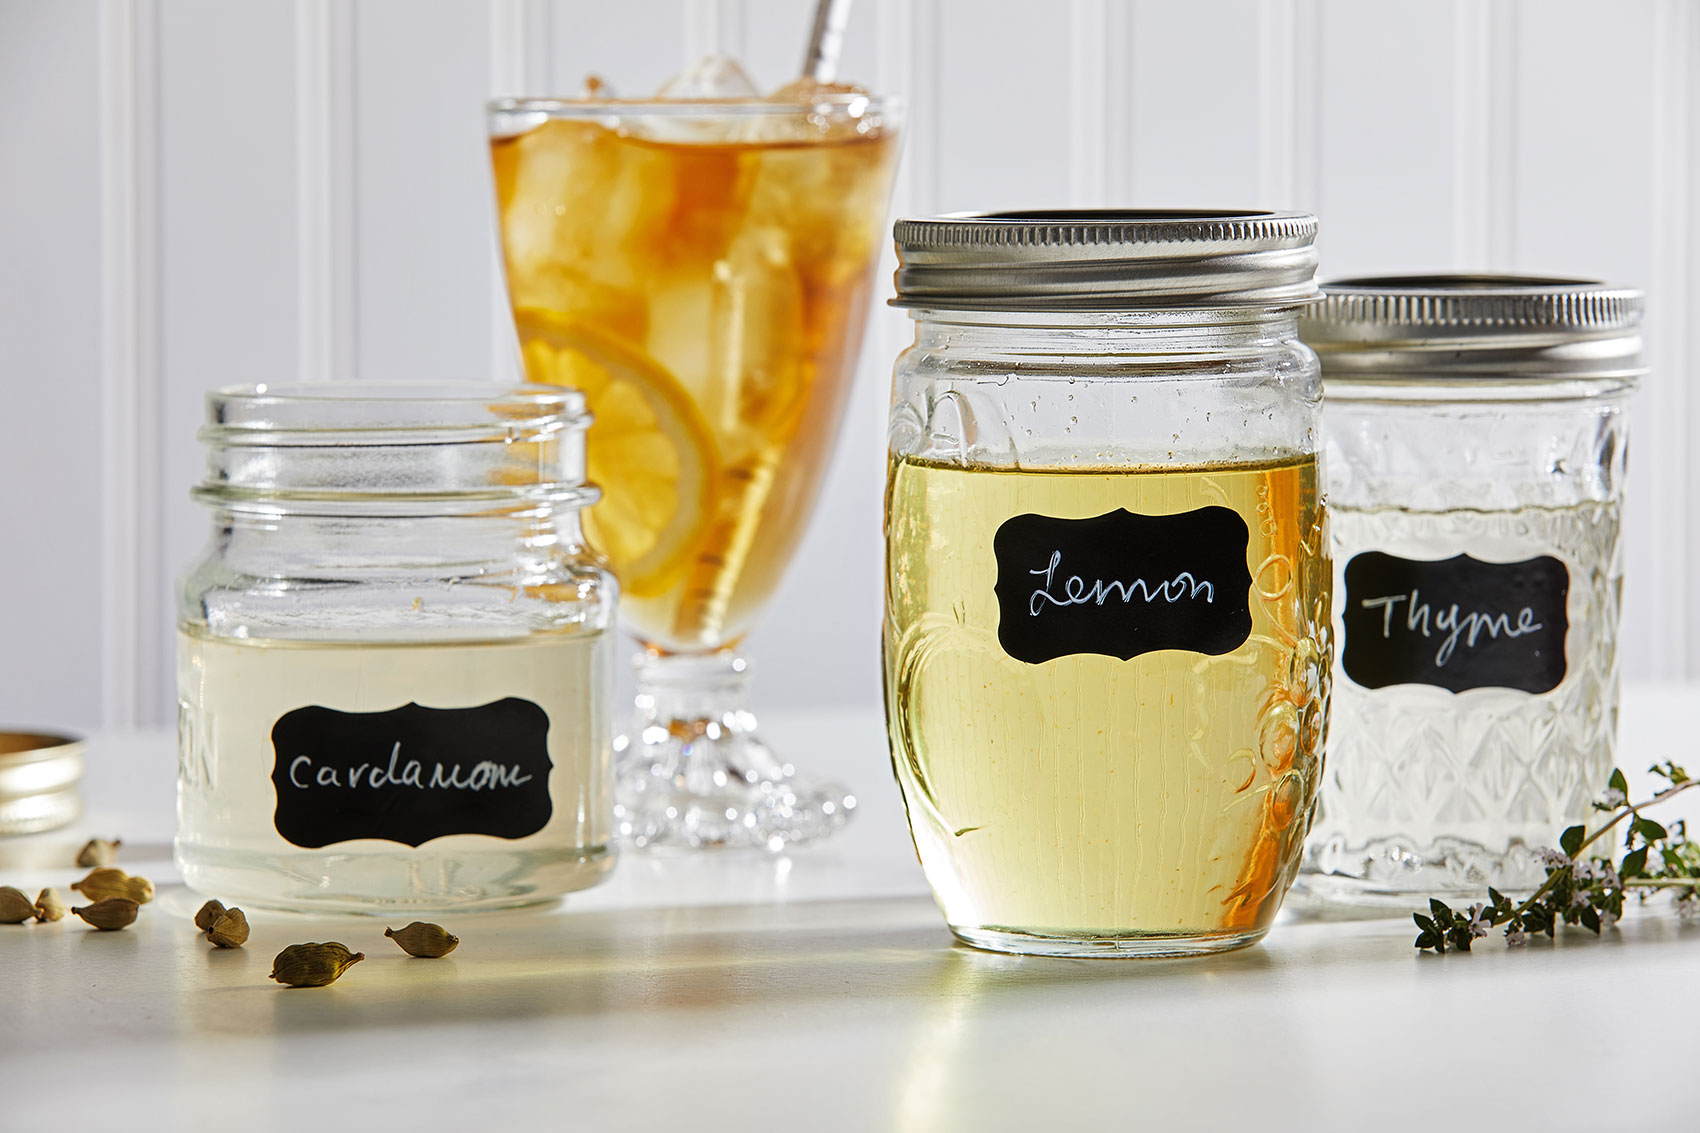 Food chat: Use leftover simple syrup for cocktails or an instant homemade soda